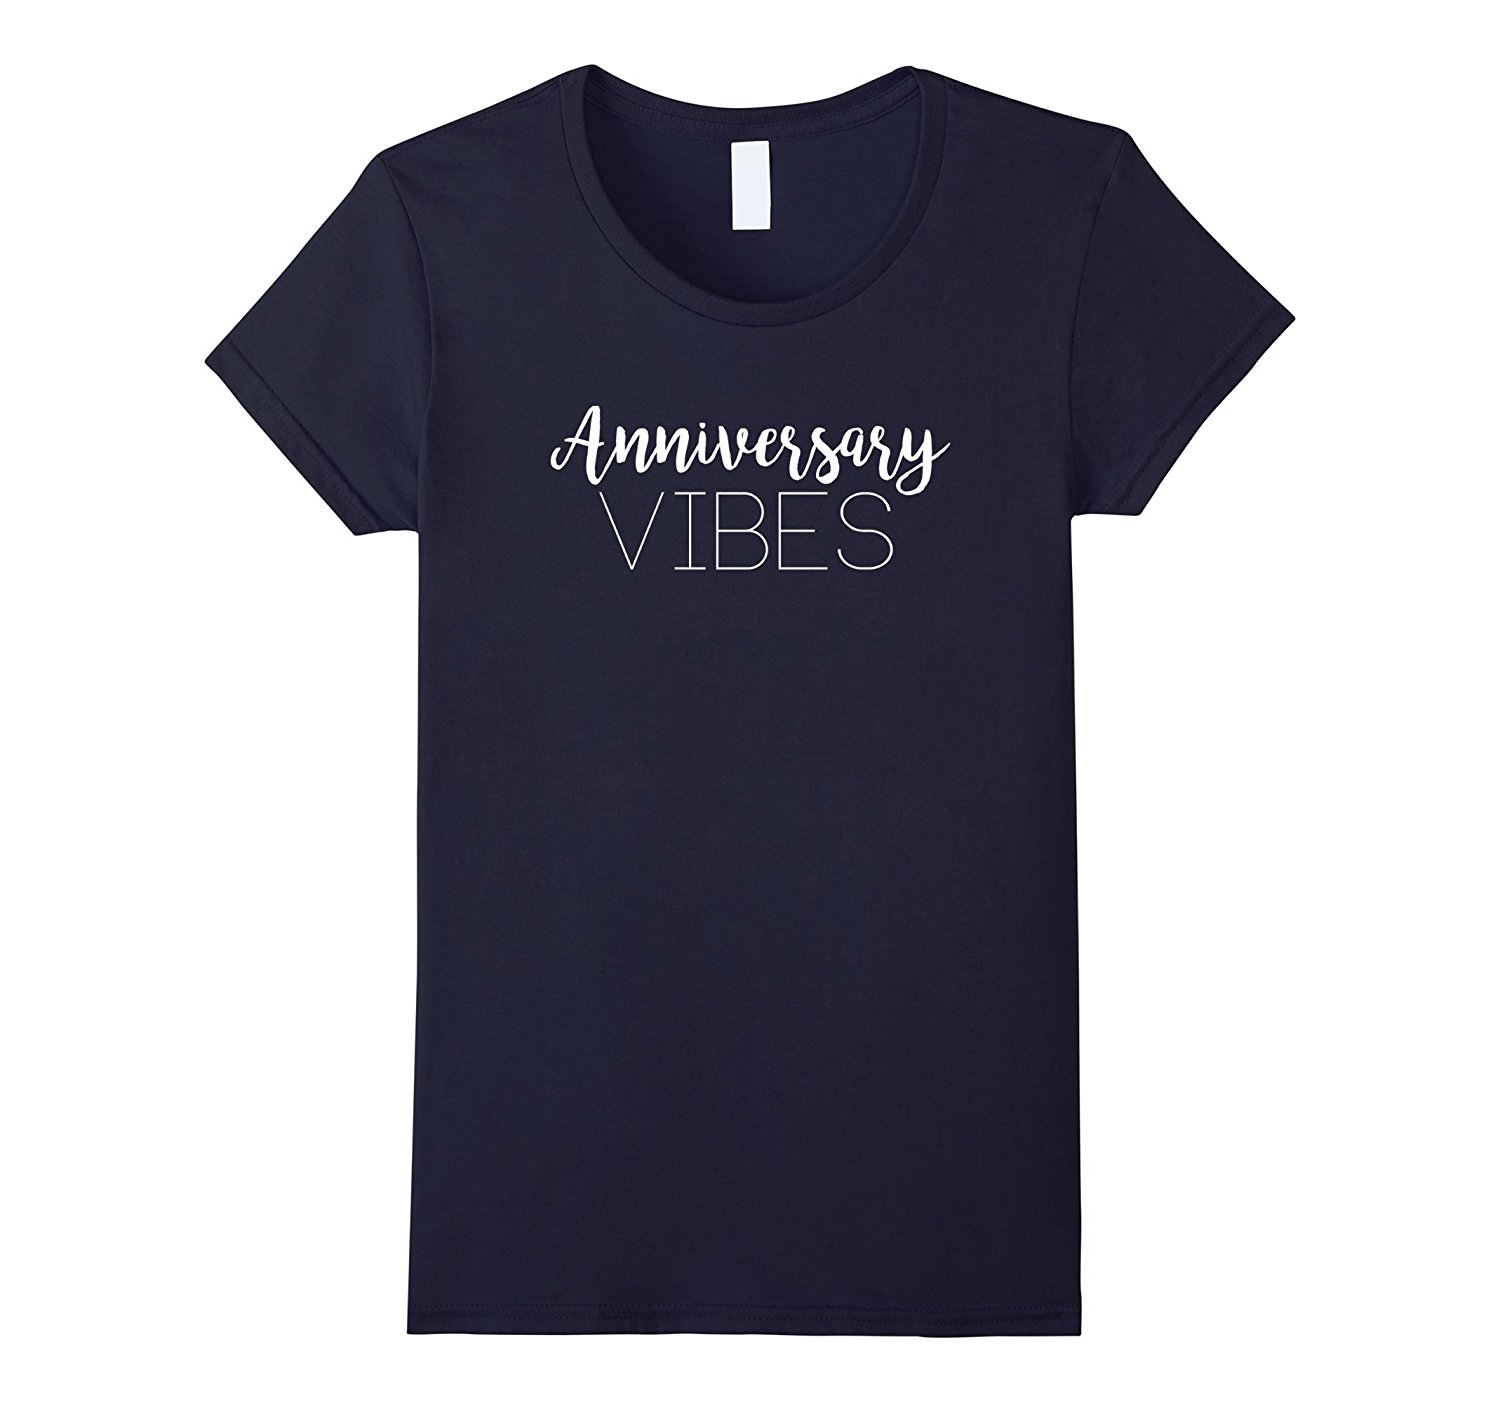 Anniversary Vibes T-Shirt Lovely Gift for Couples Women Flash Summer Short Sleeves T-Shirts  Funny Streetwear Cotton